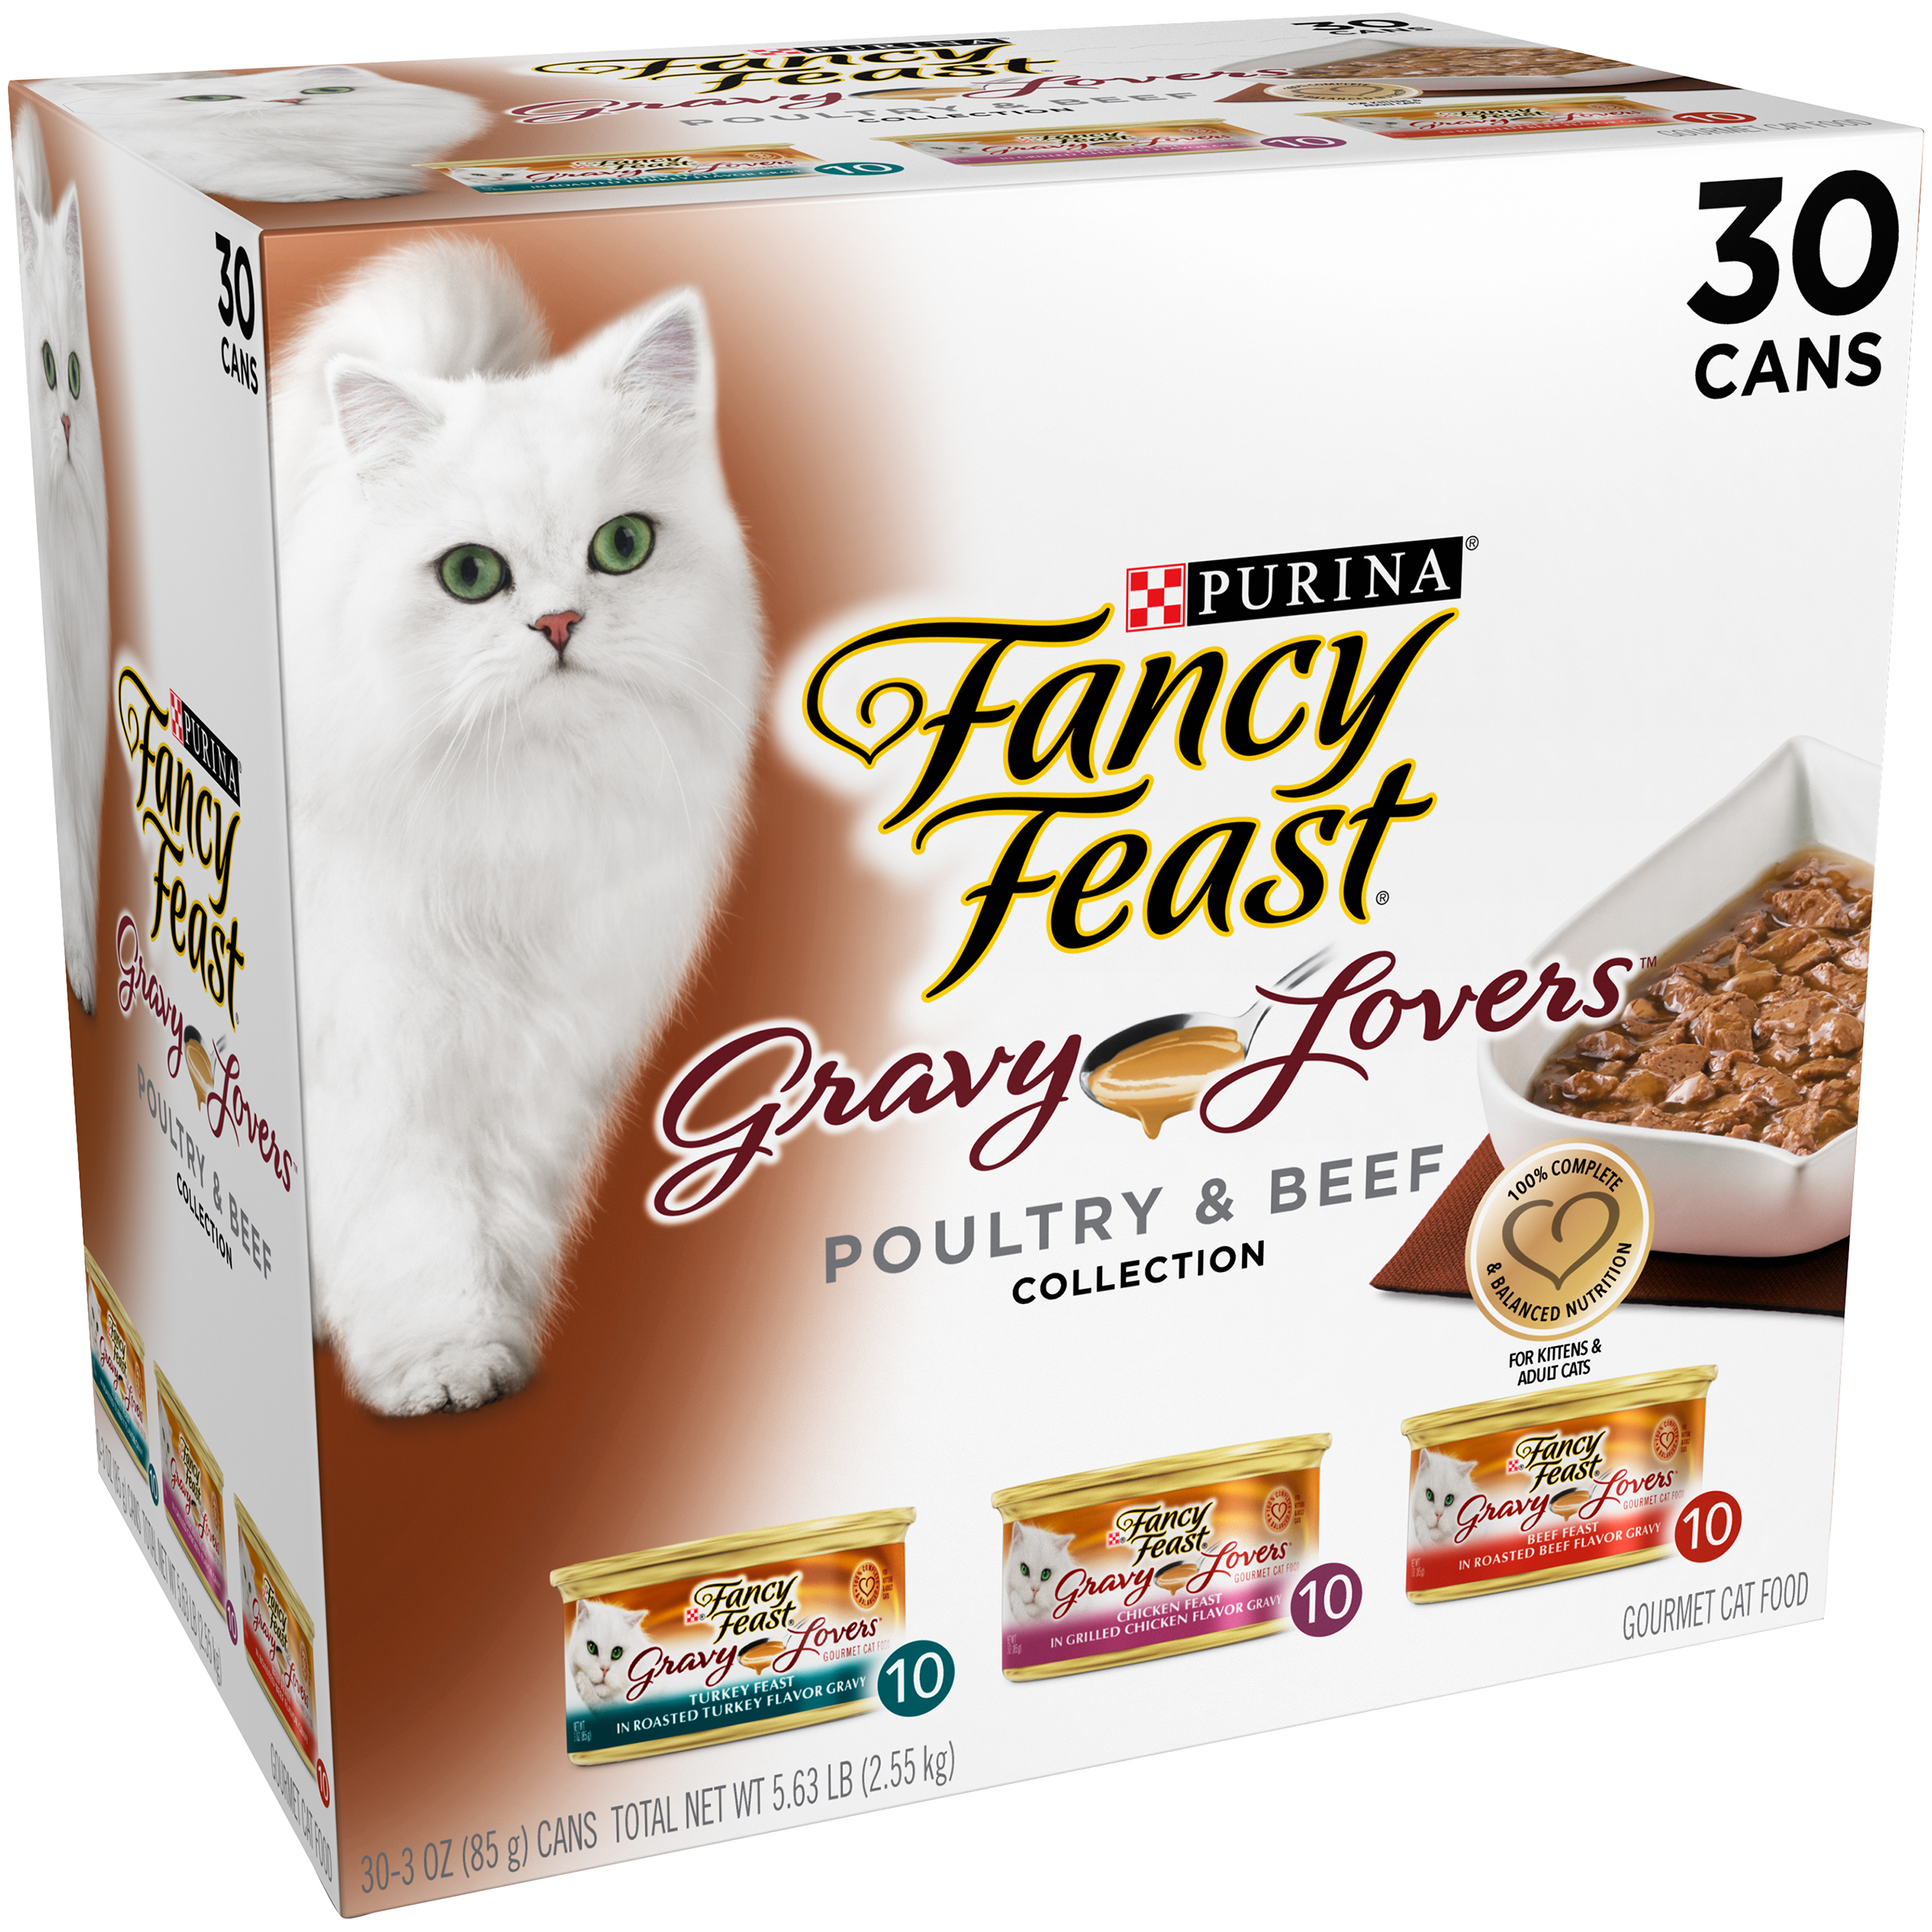 Purina Fancy Feast Gravy Lovers Poultry & Beef Feast Collection Cat Food 30-3 oz. Cans